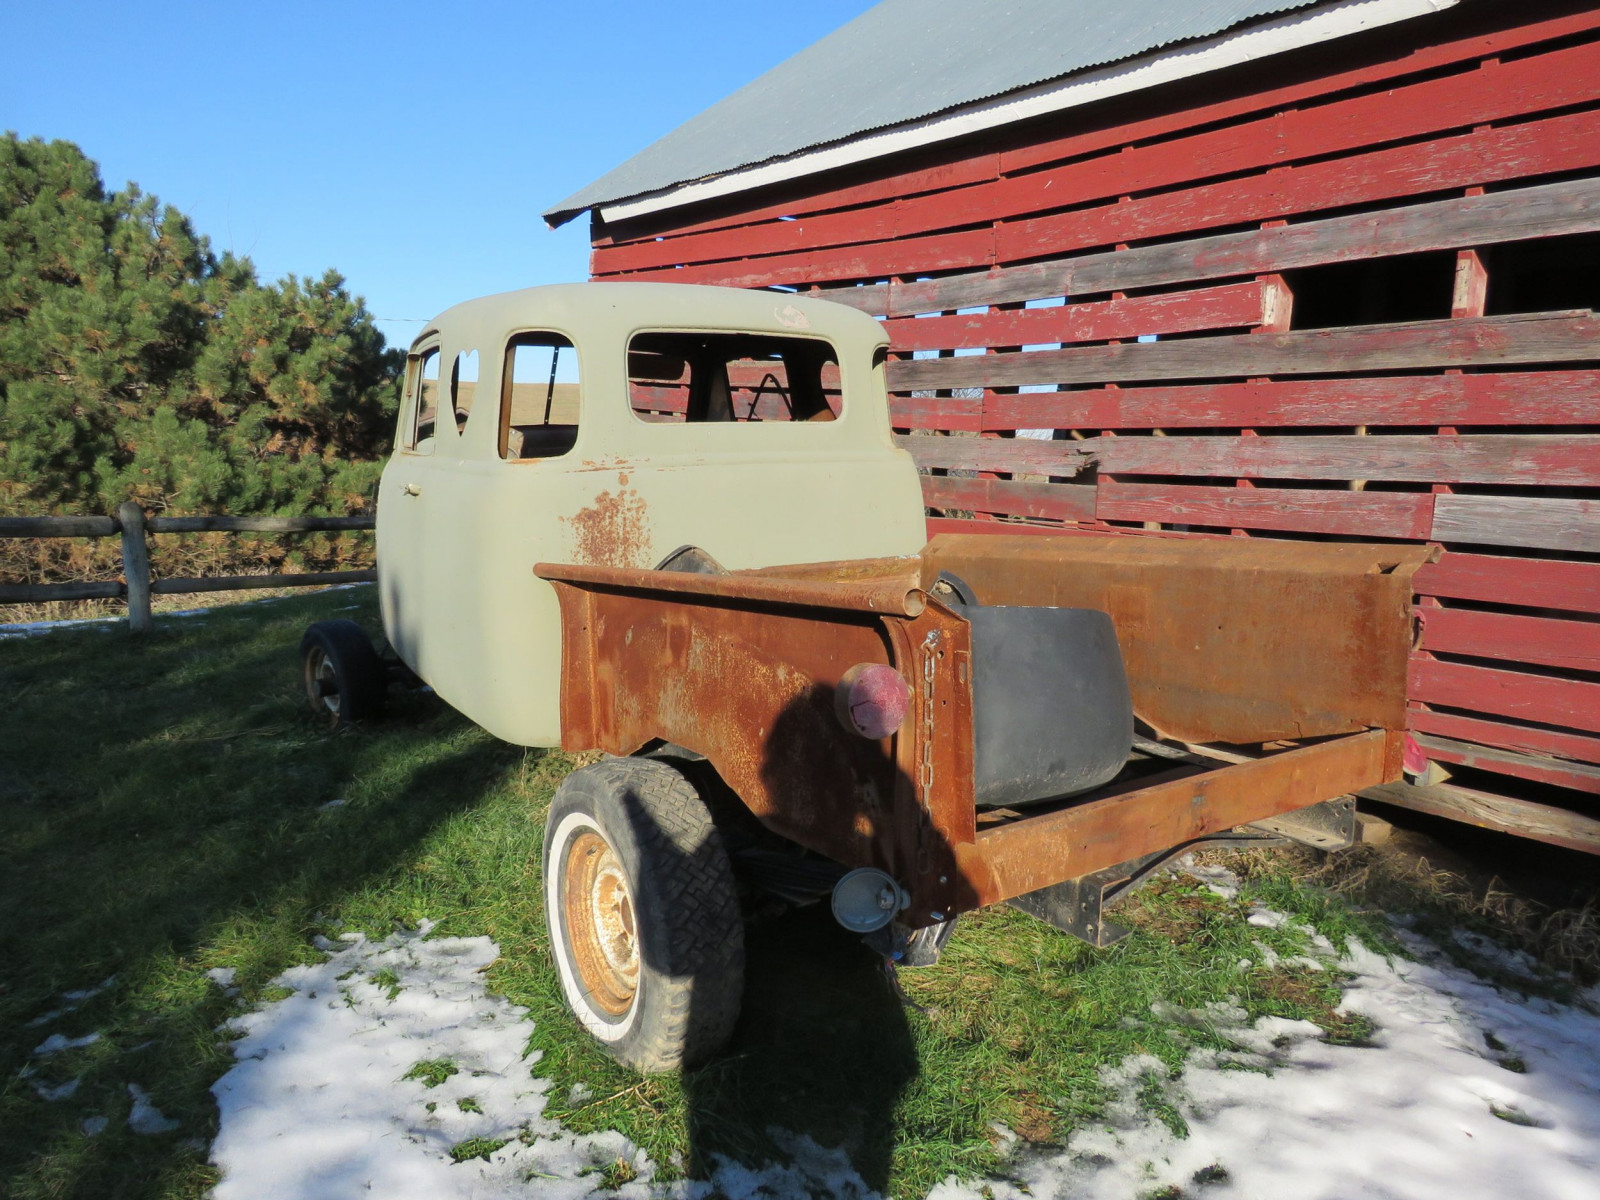 1949 Chevrolet 5 Window Cab Pickup Project - Image 4